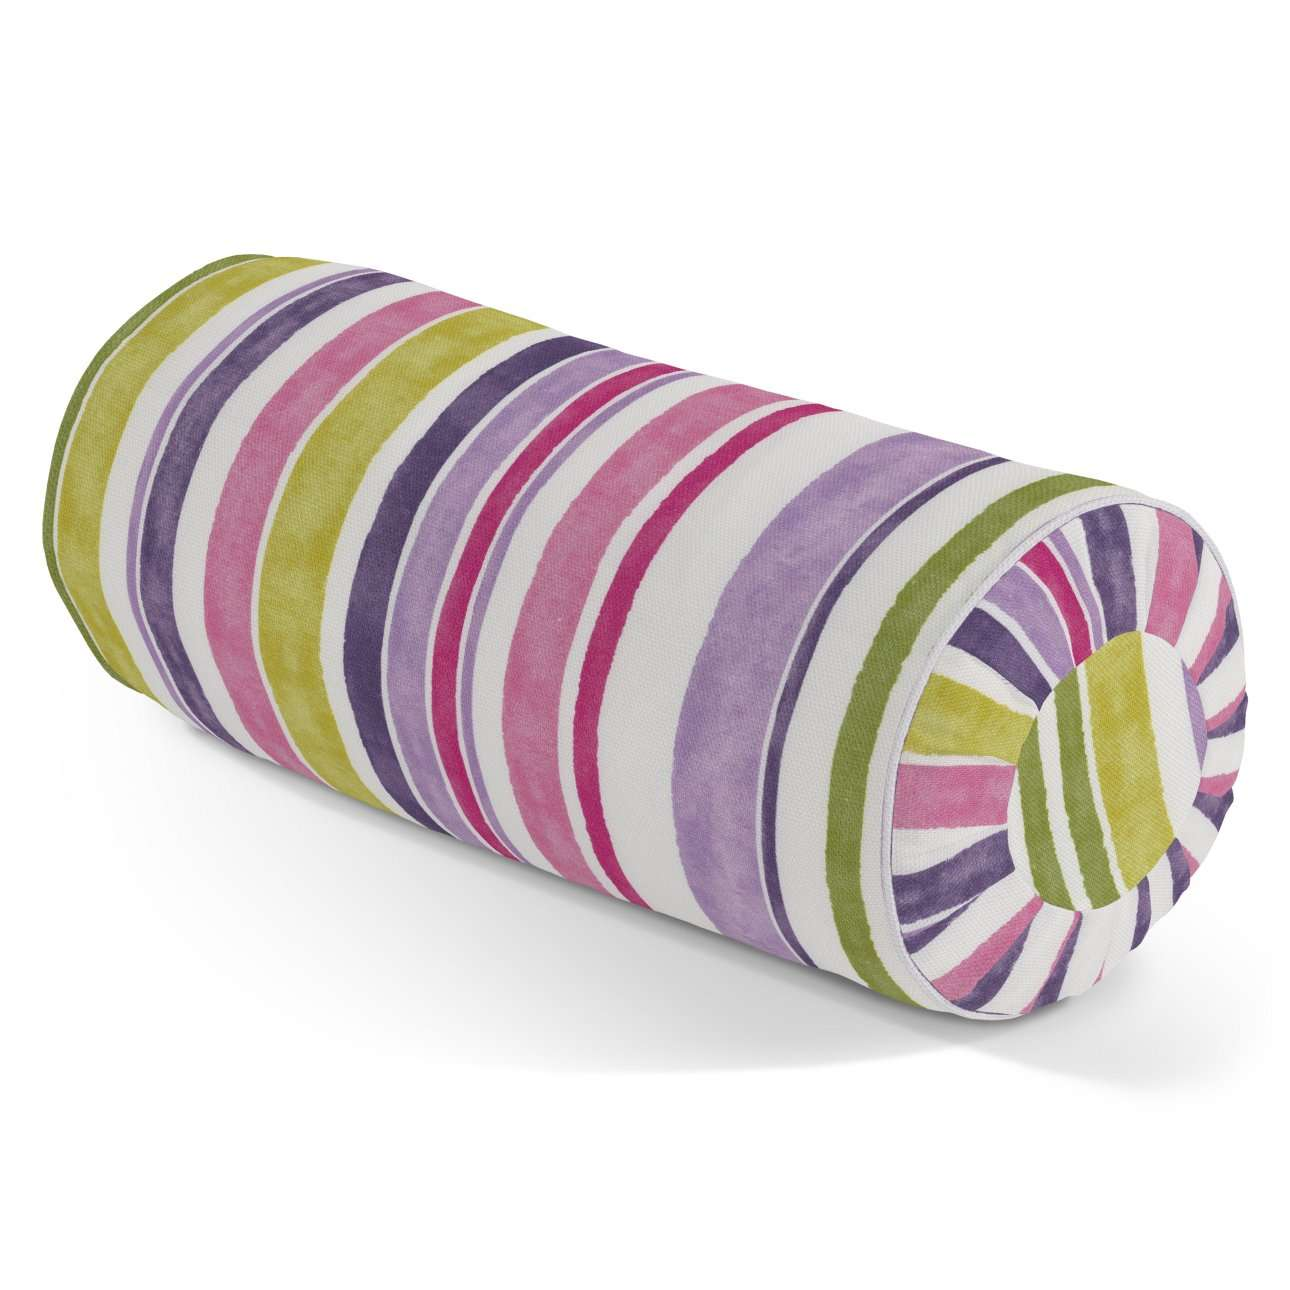 Bolster cushion with pleats Ø 20 x 50 cm (8 x 20 inch) in collection Monet, fabric: 140-01